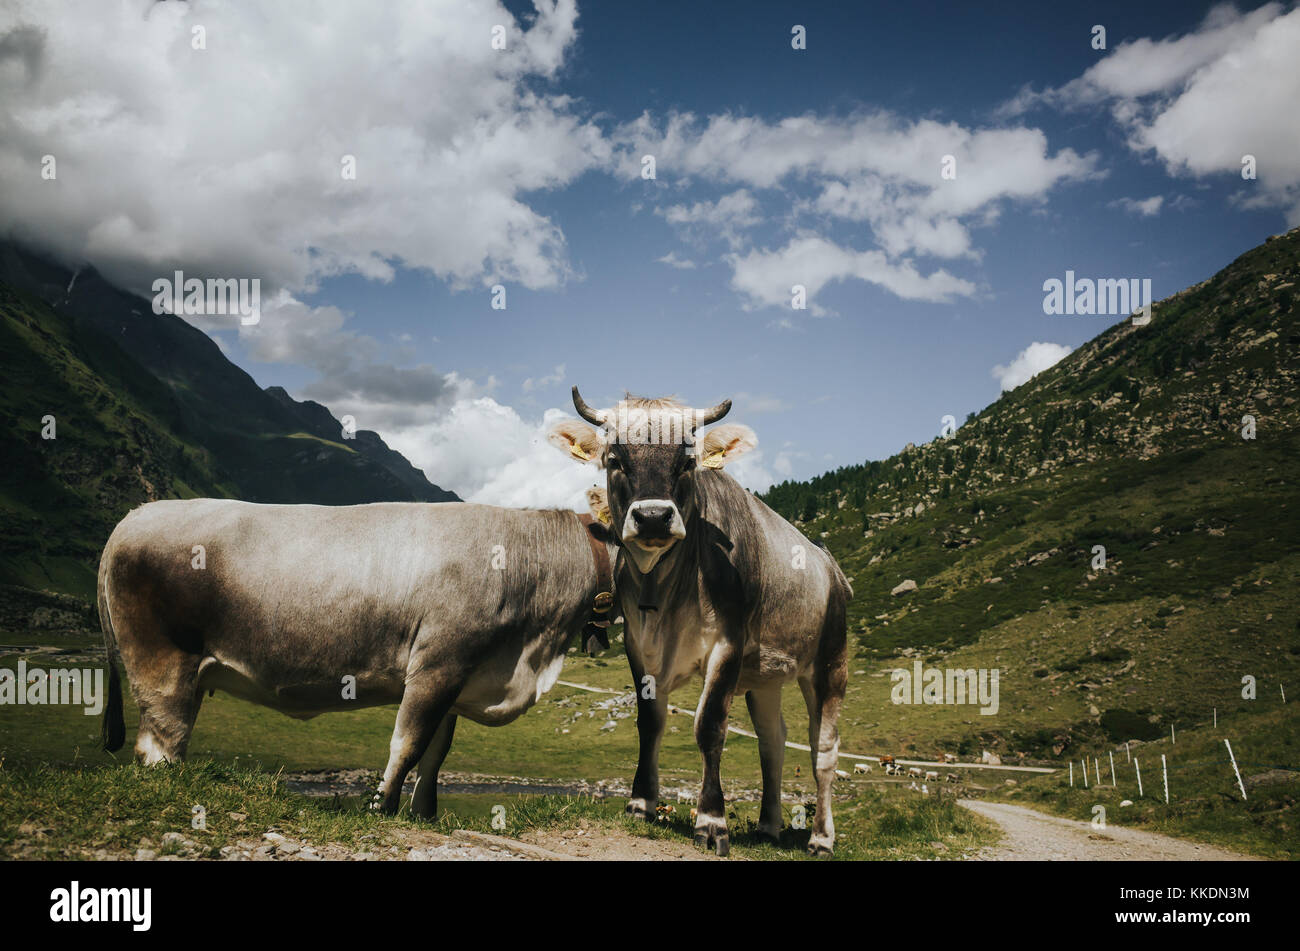 cows looking into camera - Stock Image